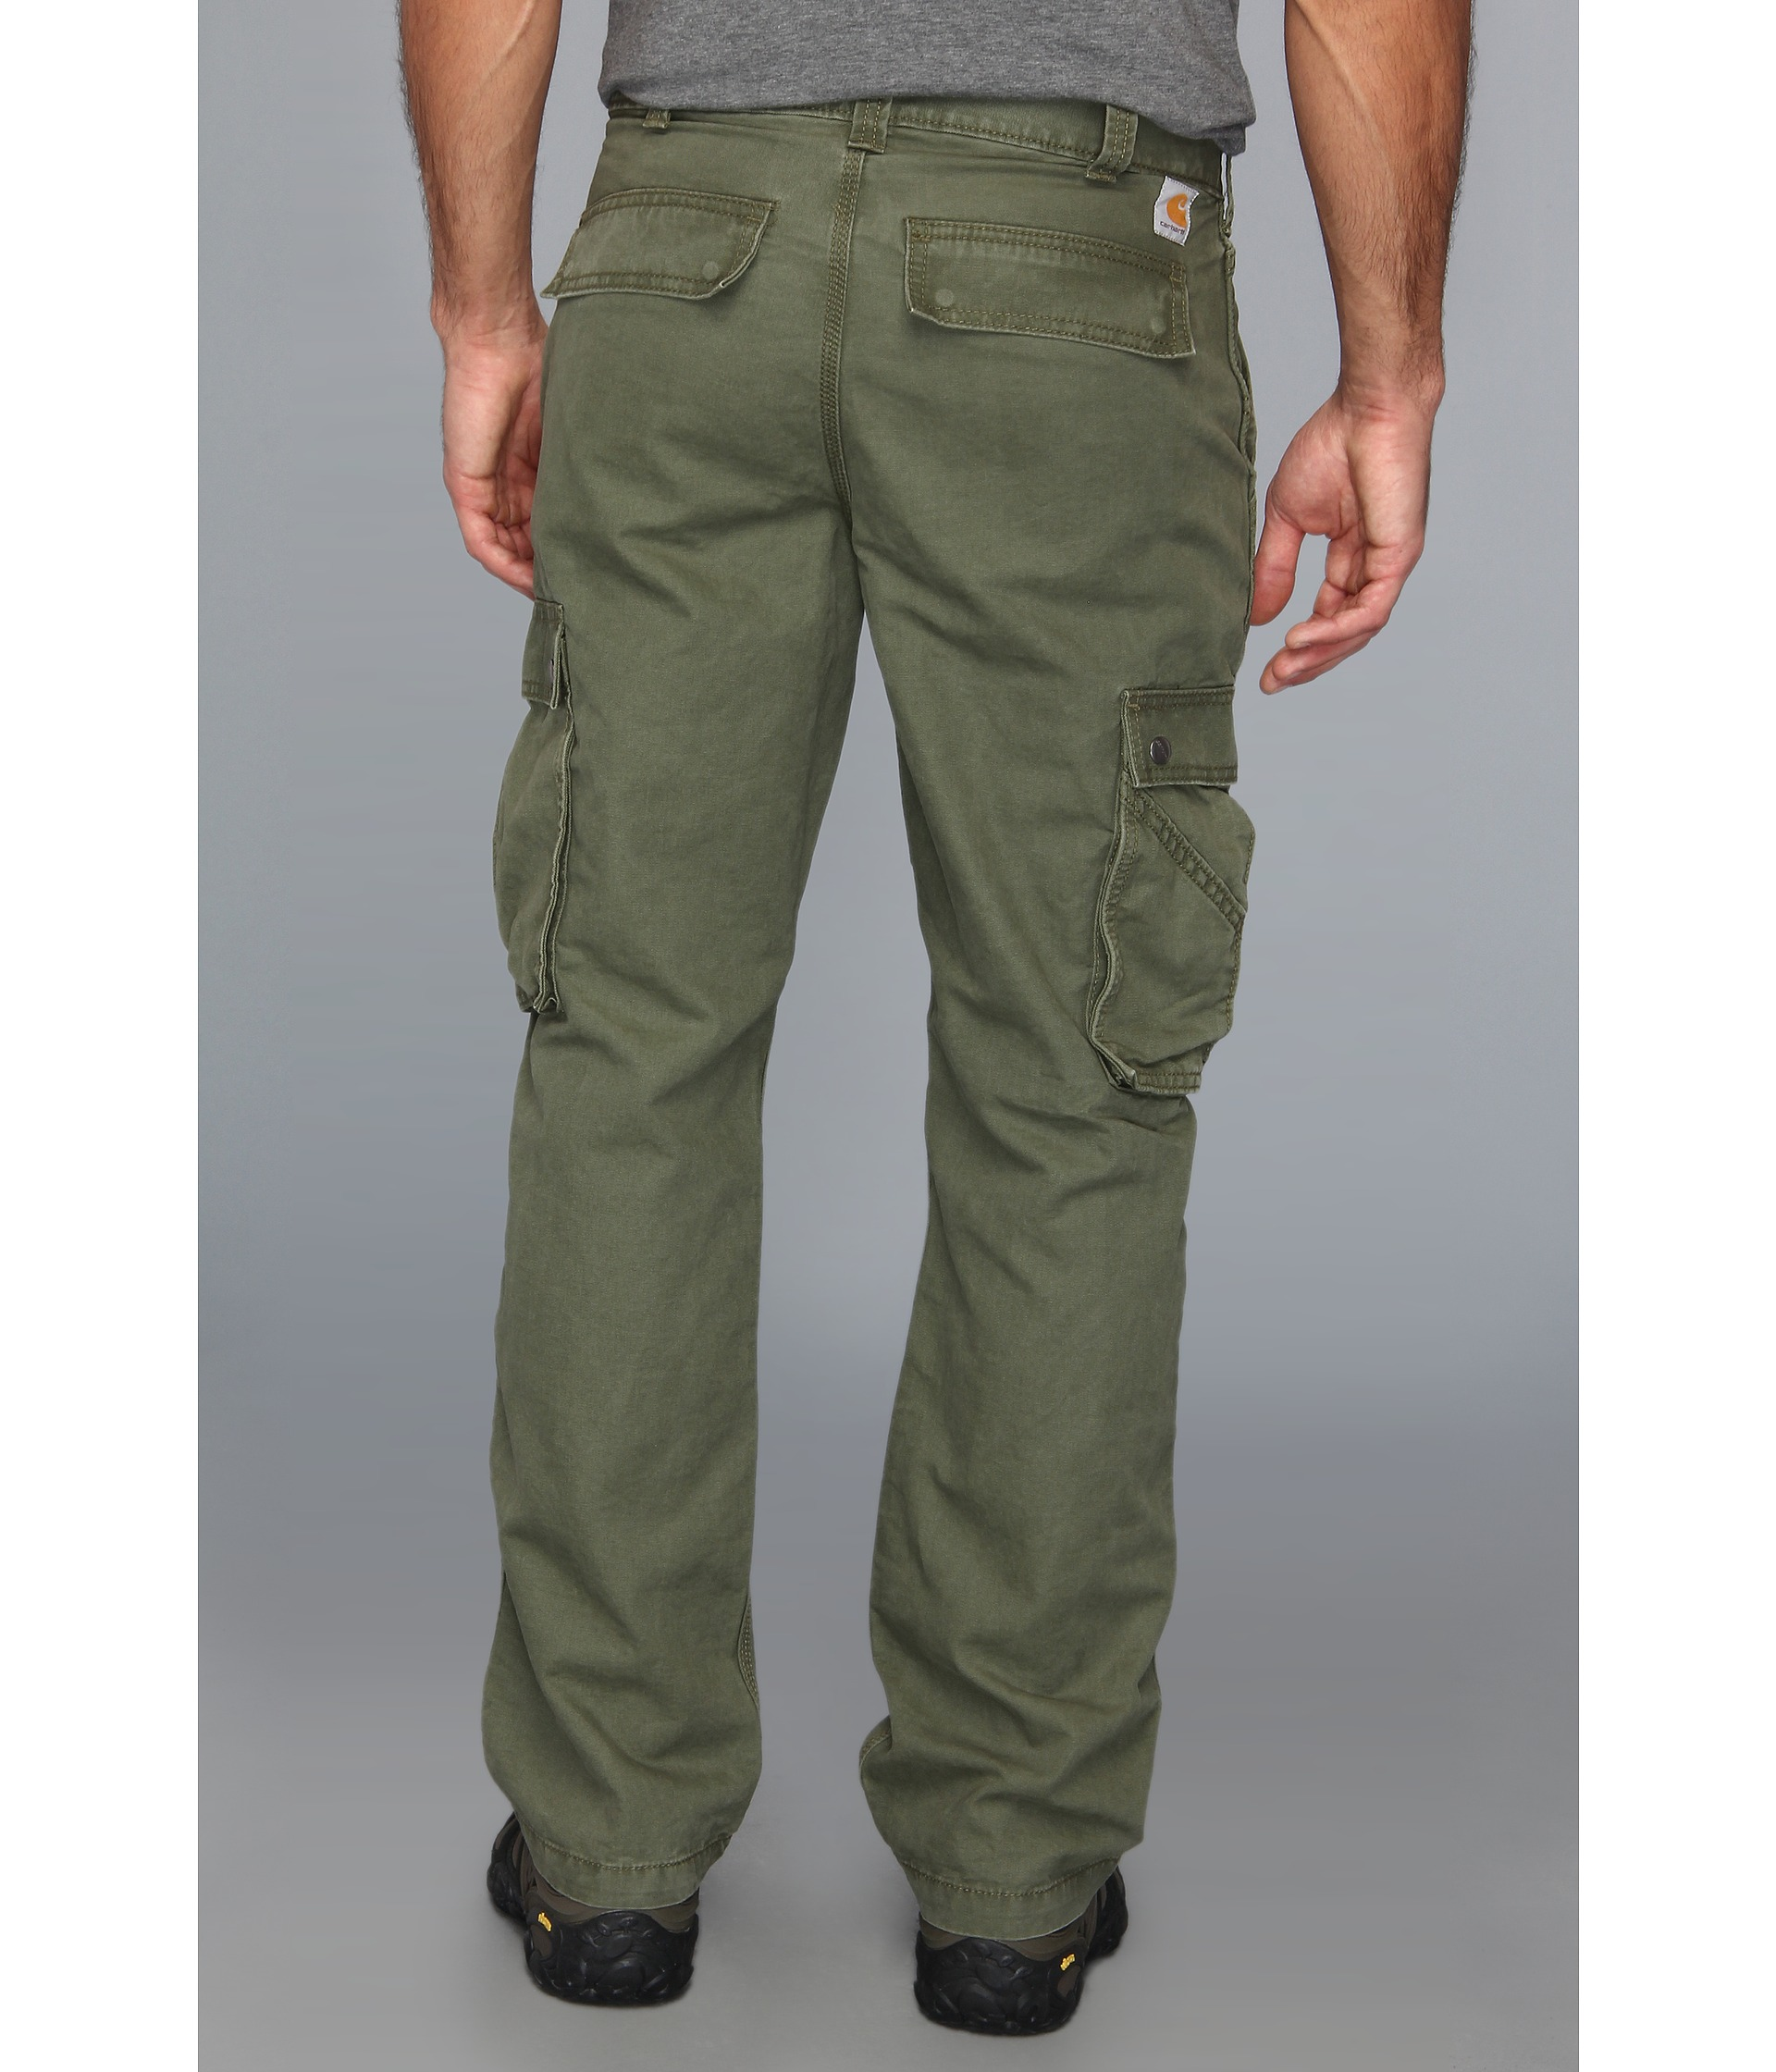 Carhartt Rugged Cargo Pant - 6pm.com